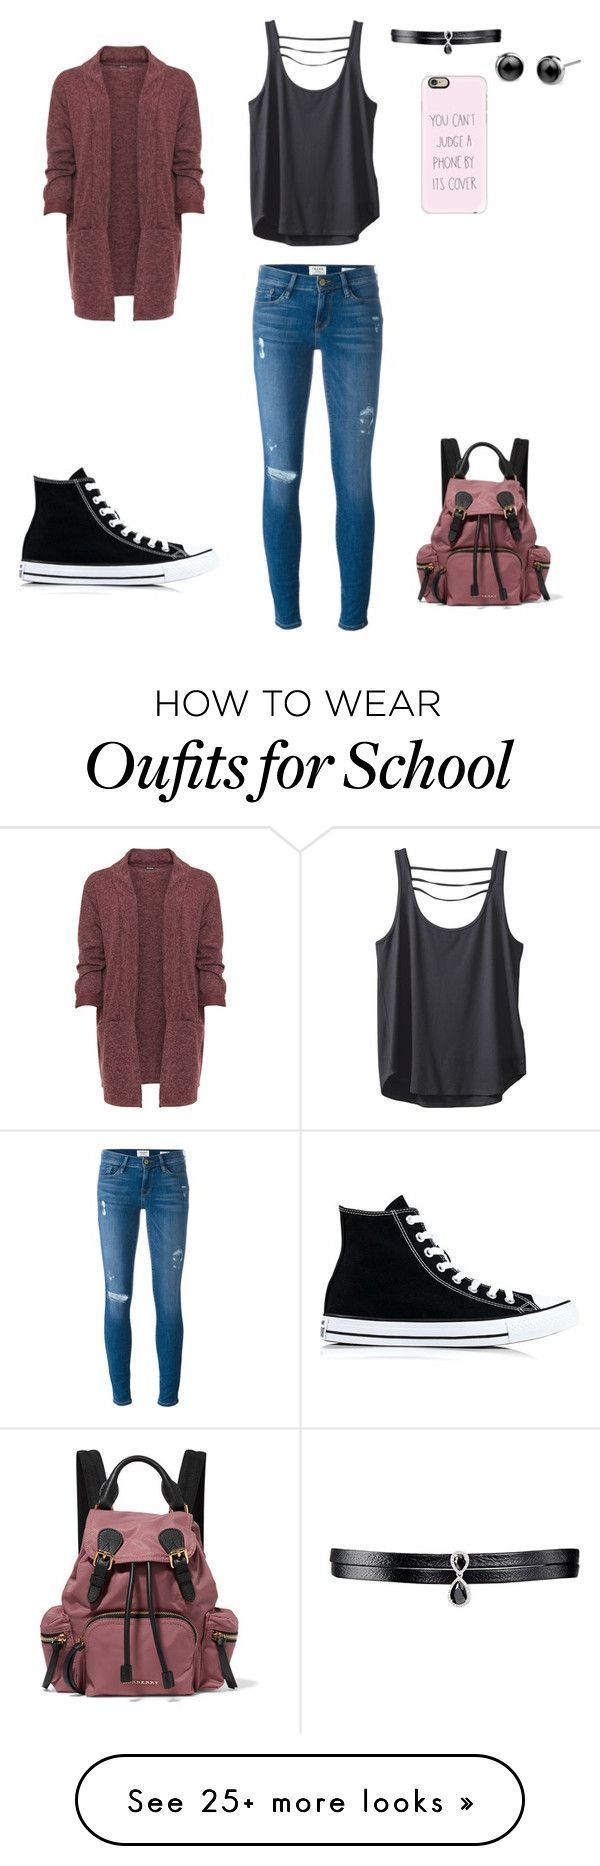 #Back To School Outfit plus size #backtoschoolbulletinboards #ear1993 #featurin #Polyvore #School Back to school   by ear1993 on Polyvore featurin #back_to_school_bulletin_boards...        Back to school   by ear1993 on Polyvore featurin #back_to_school_bulletin_boards #back_to_school_diy #back_to_school_hairstyles #backtoschoolhairstyles #Back To School Outfit plus size #backtoschoolbulletinboards #ear1993 #featurin #Polyvore #School Back to school   by ear1993 on Polyvore featurin #back_to_sch #backtoschoolhairstyles